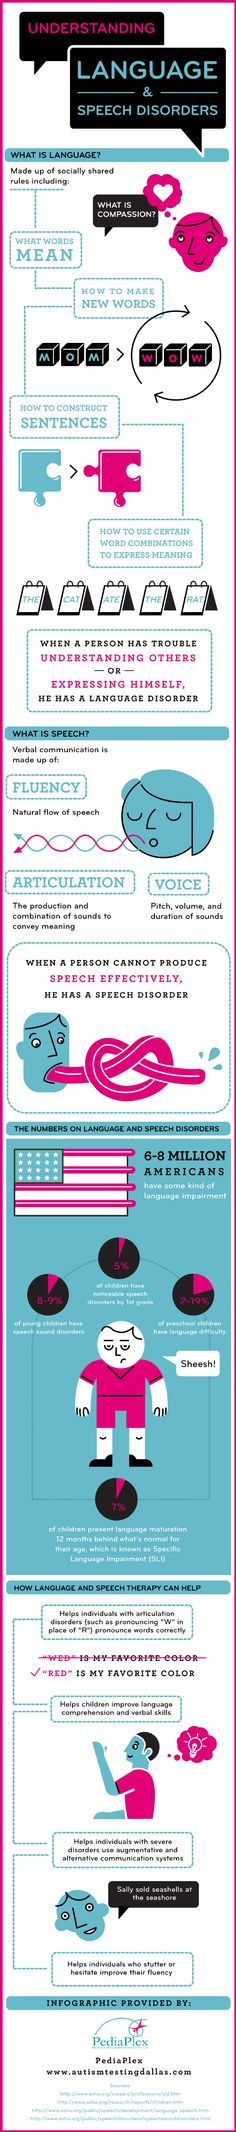 Understanding Language and Speech Disorders [INFOGRAPHIC]